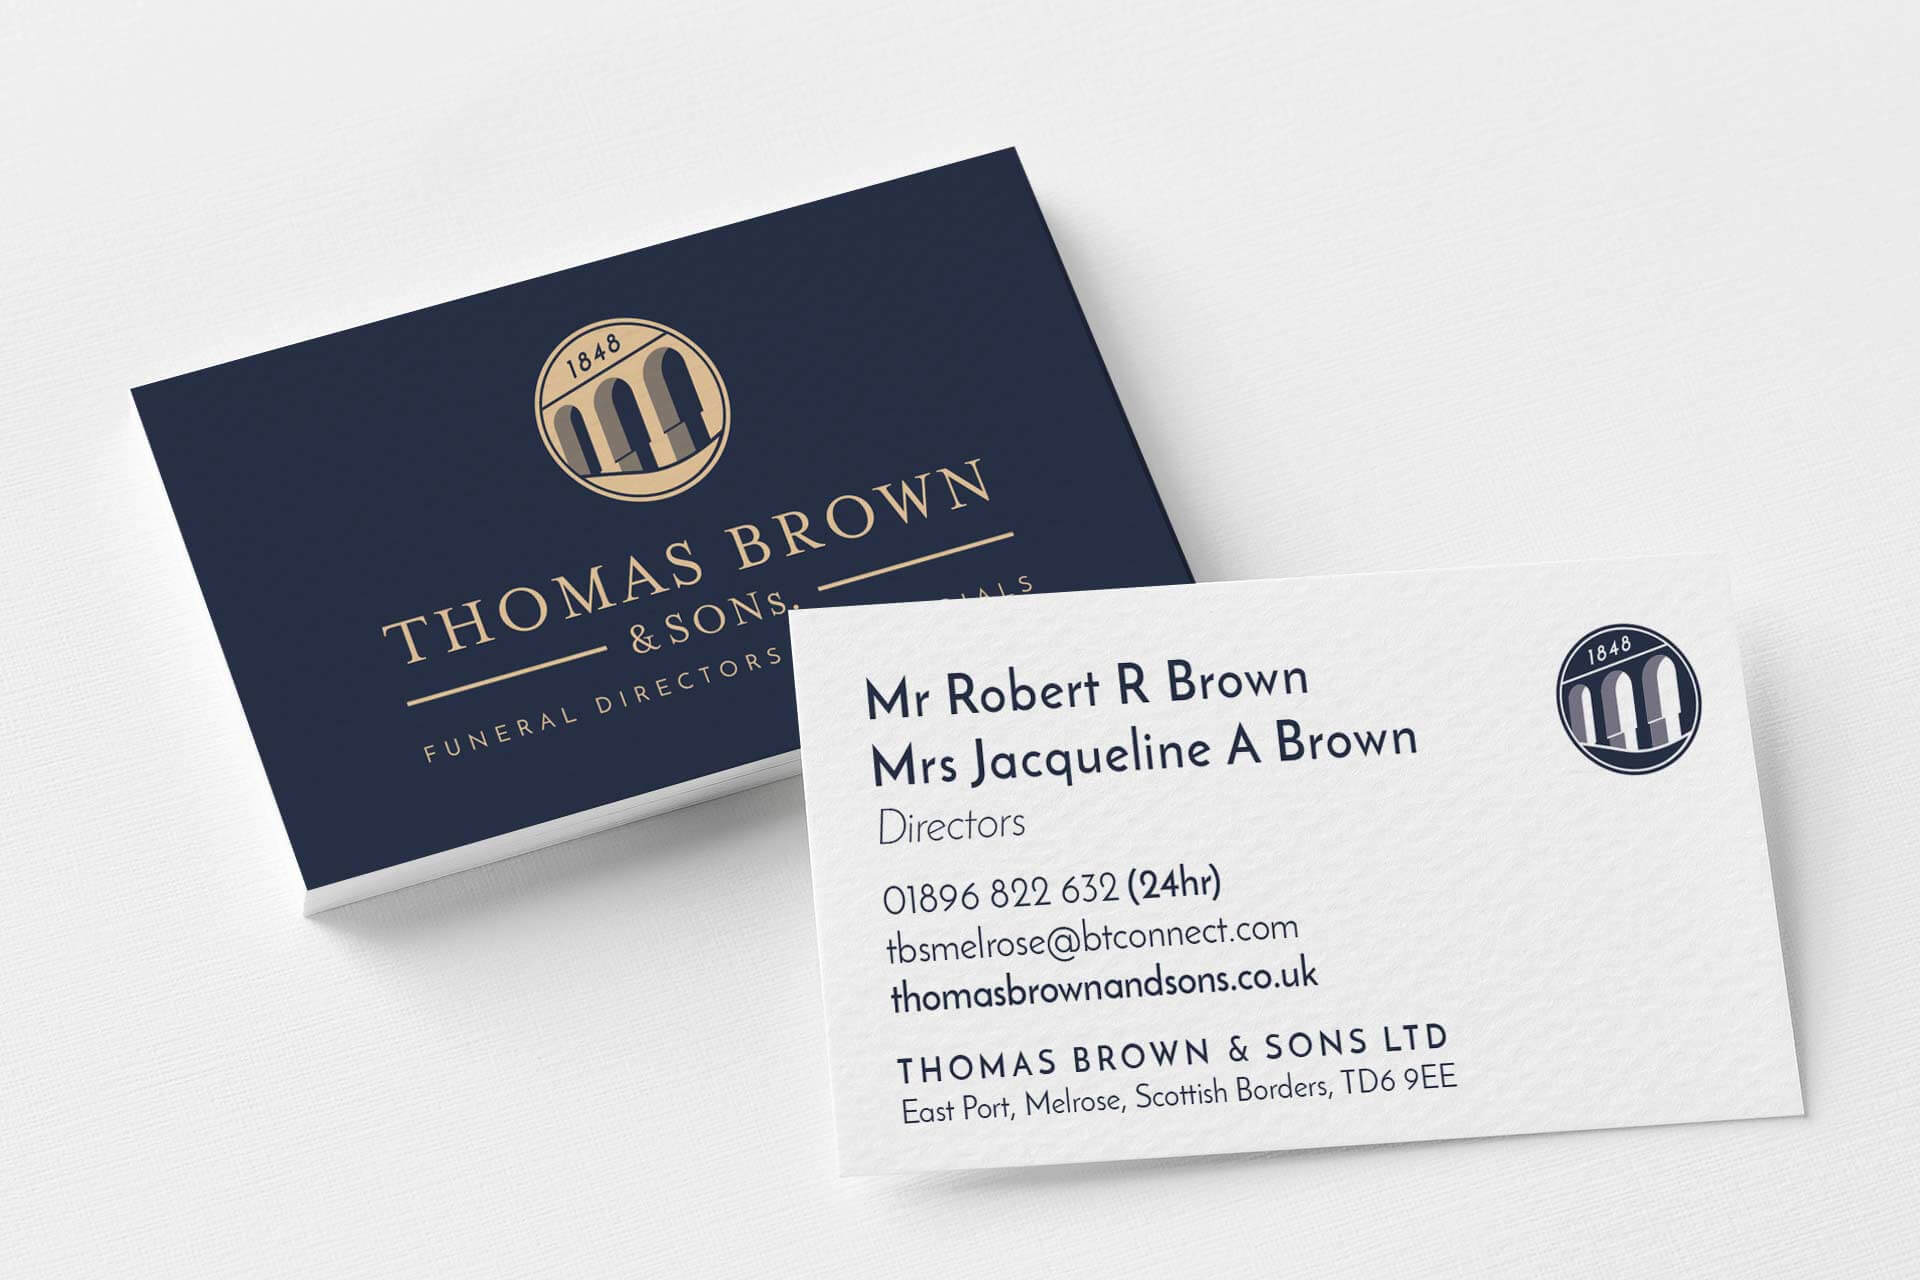 thomas brown calling cards front and back